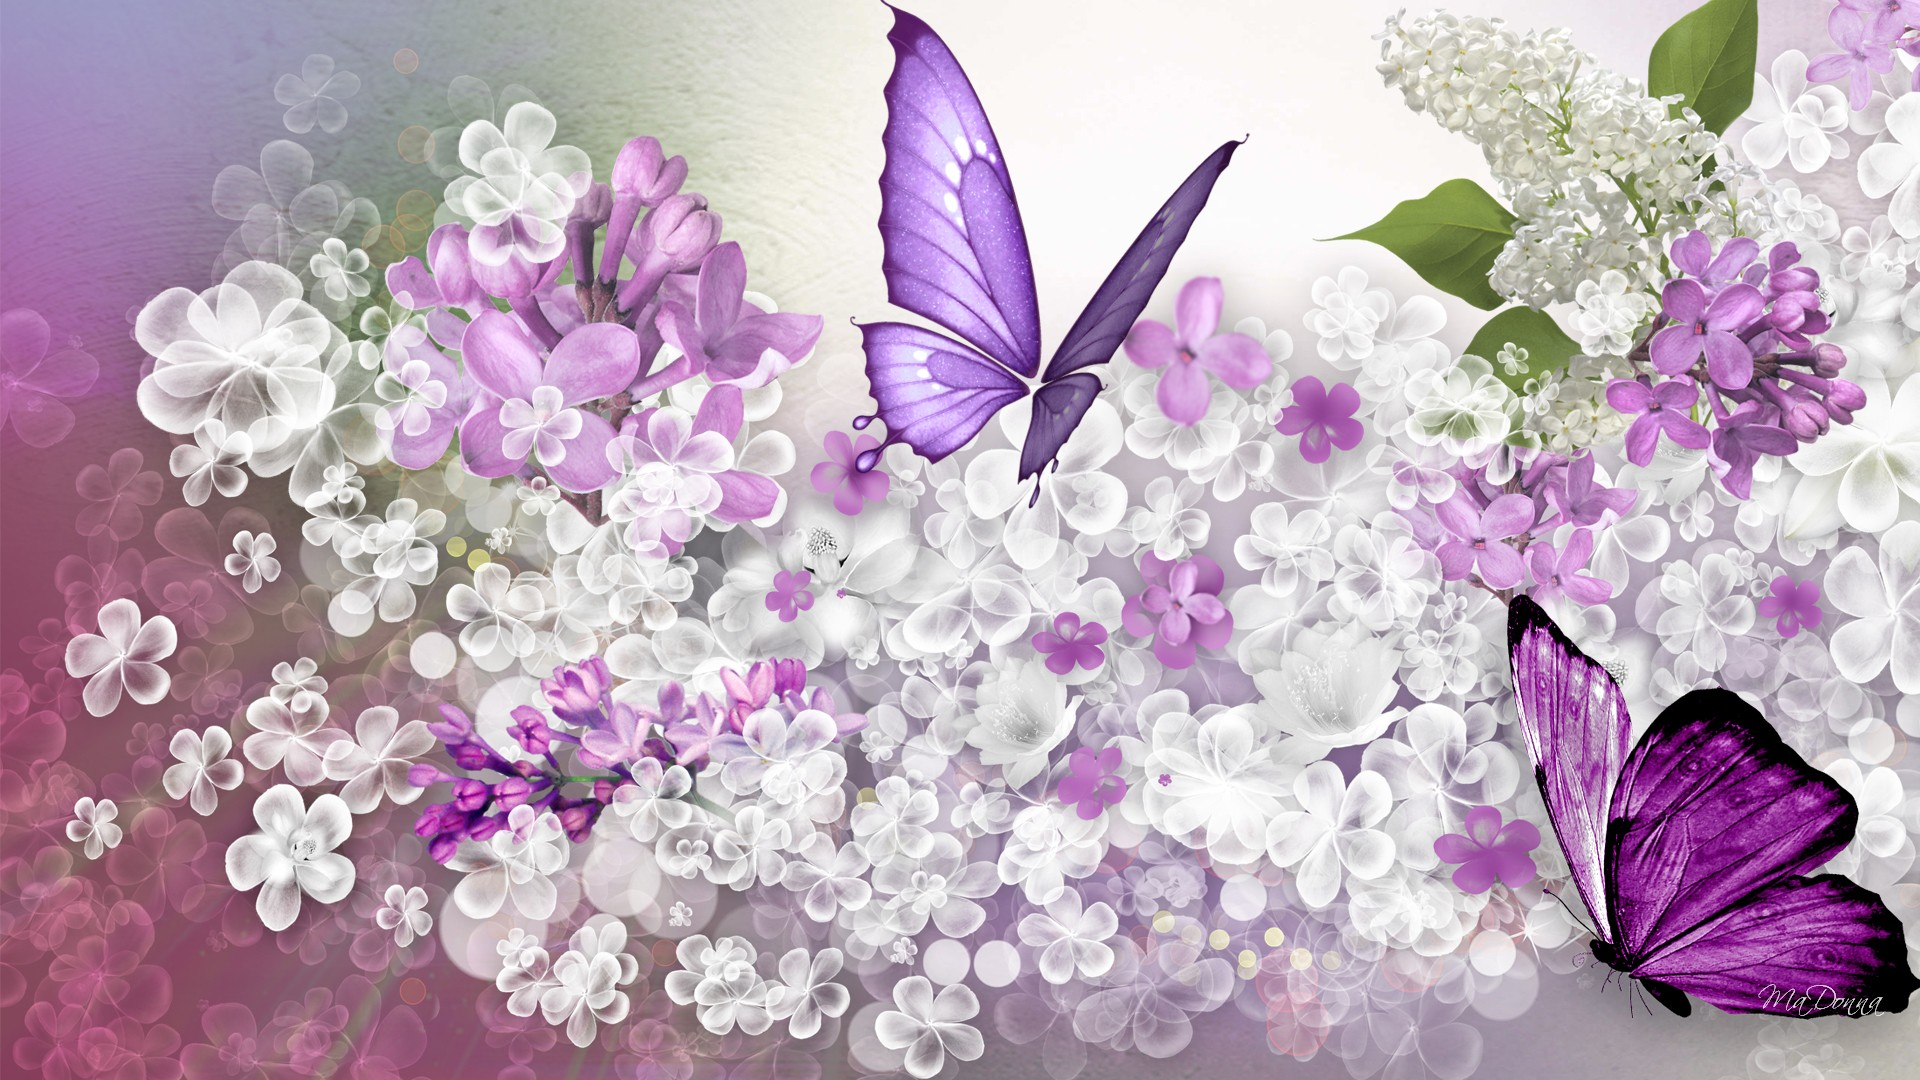 Lilac Flowers Windows 81 Theme and Pictures All for Windows 10 1920x1080